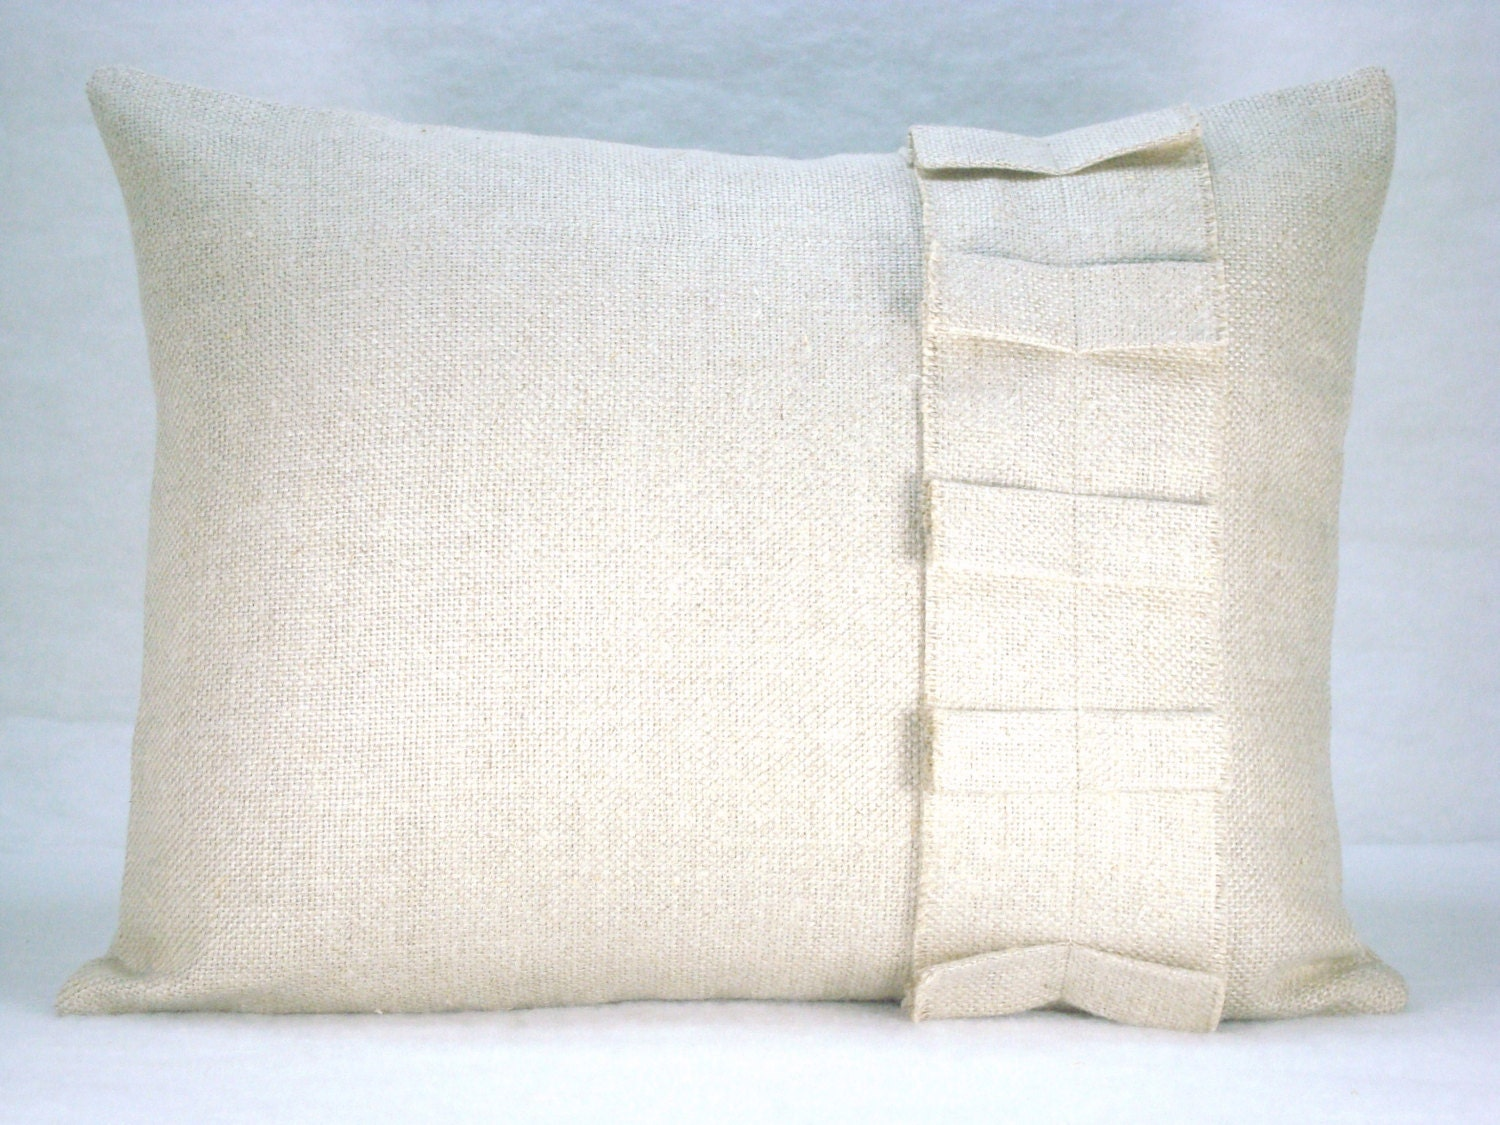 Decorative Pillows Linen : Linen Lumbar Pillow Decorative Accent Lumbar Pillow Ruffled